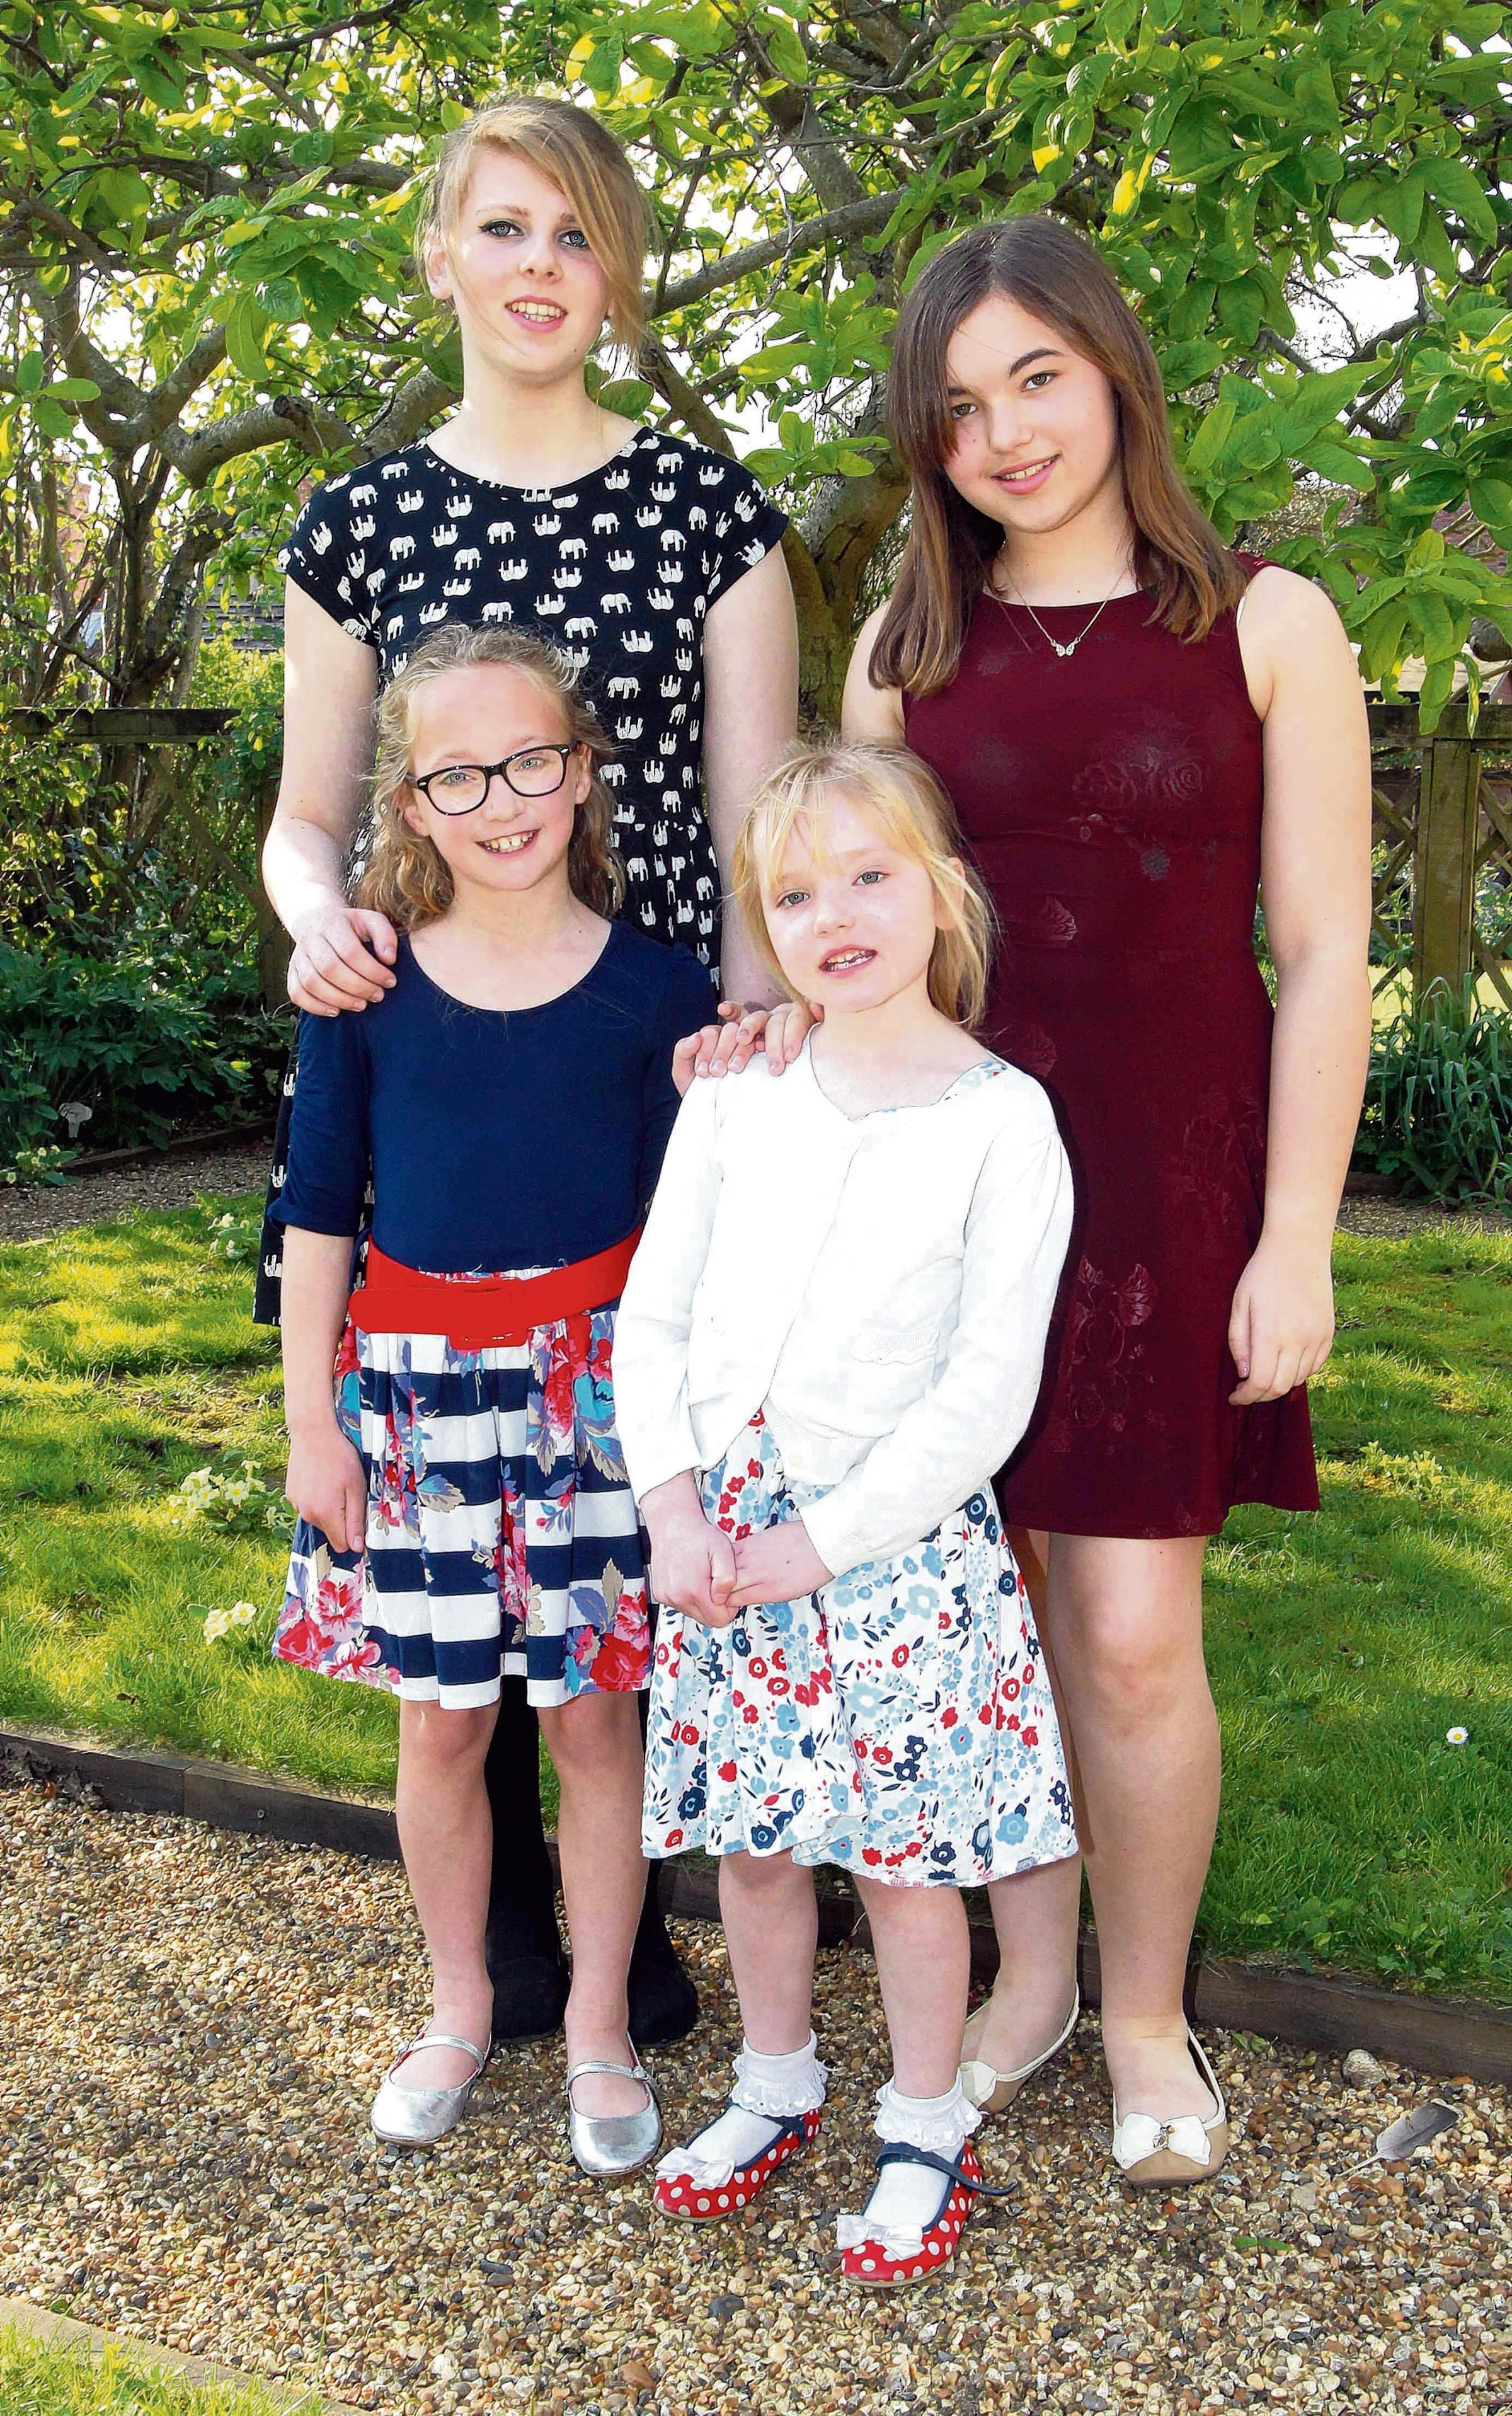 Witham carnival court look forward to representing town